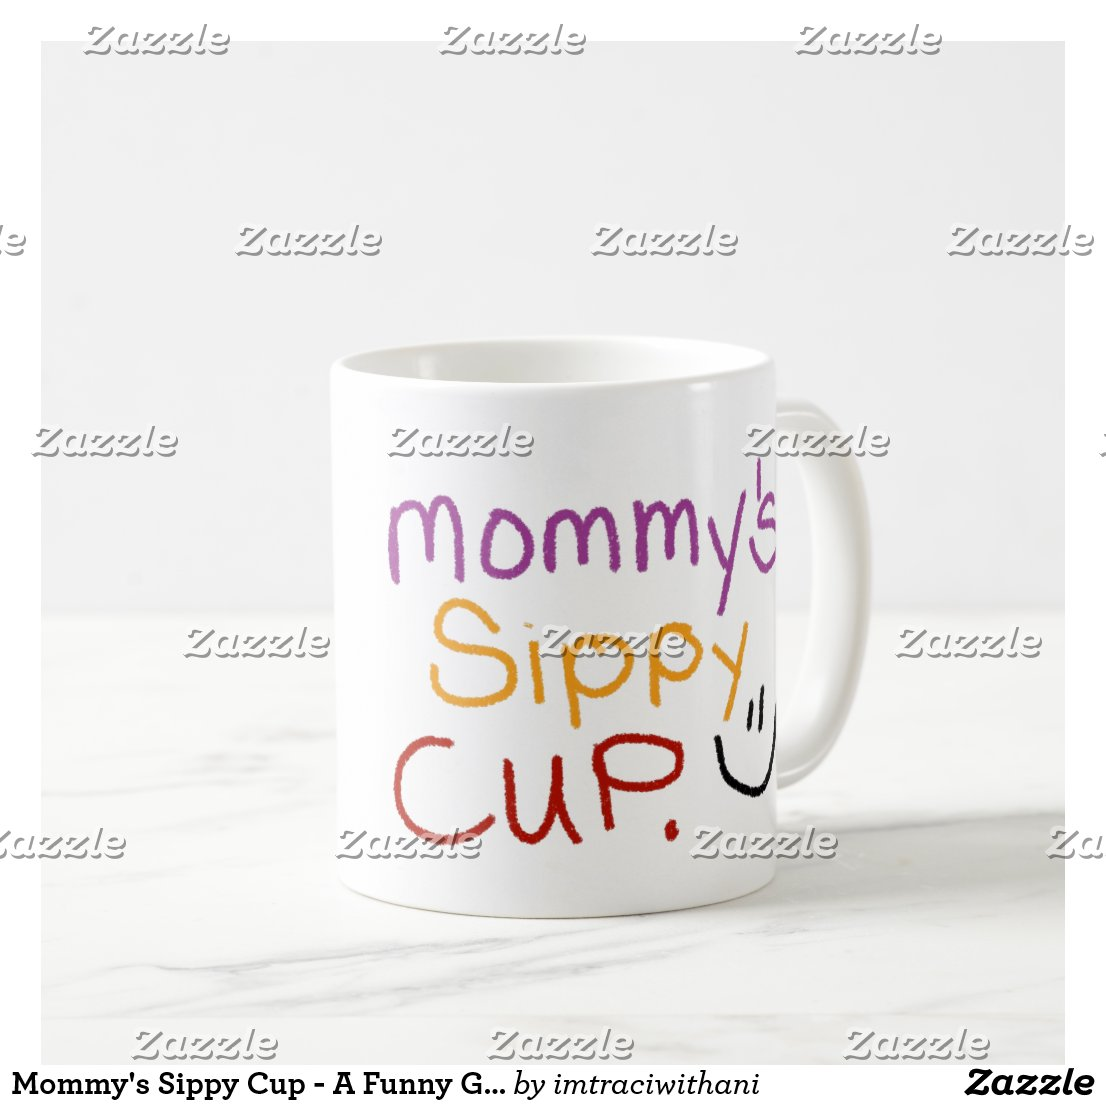 Mommy's Sippy Cup - A Funny Gift for Moms